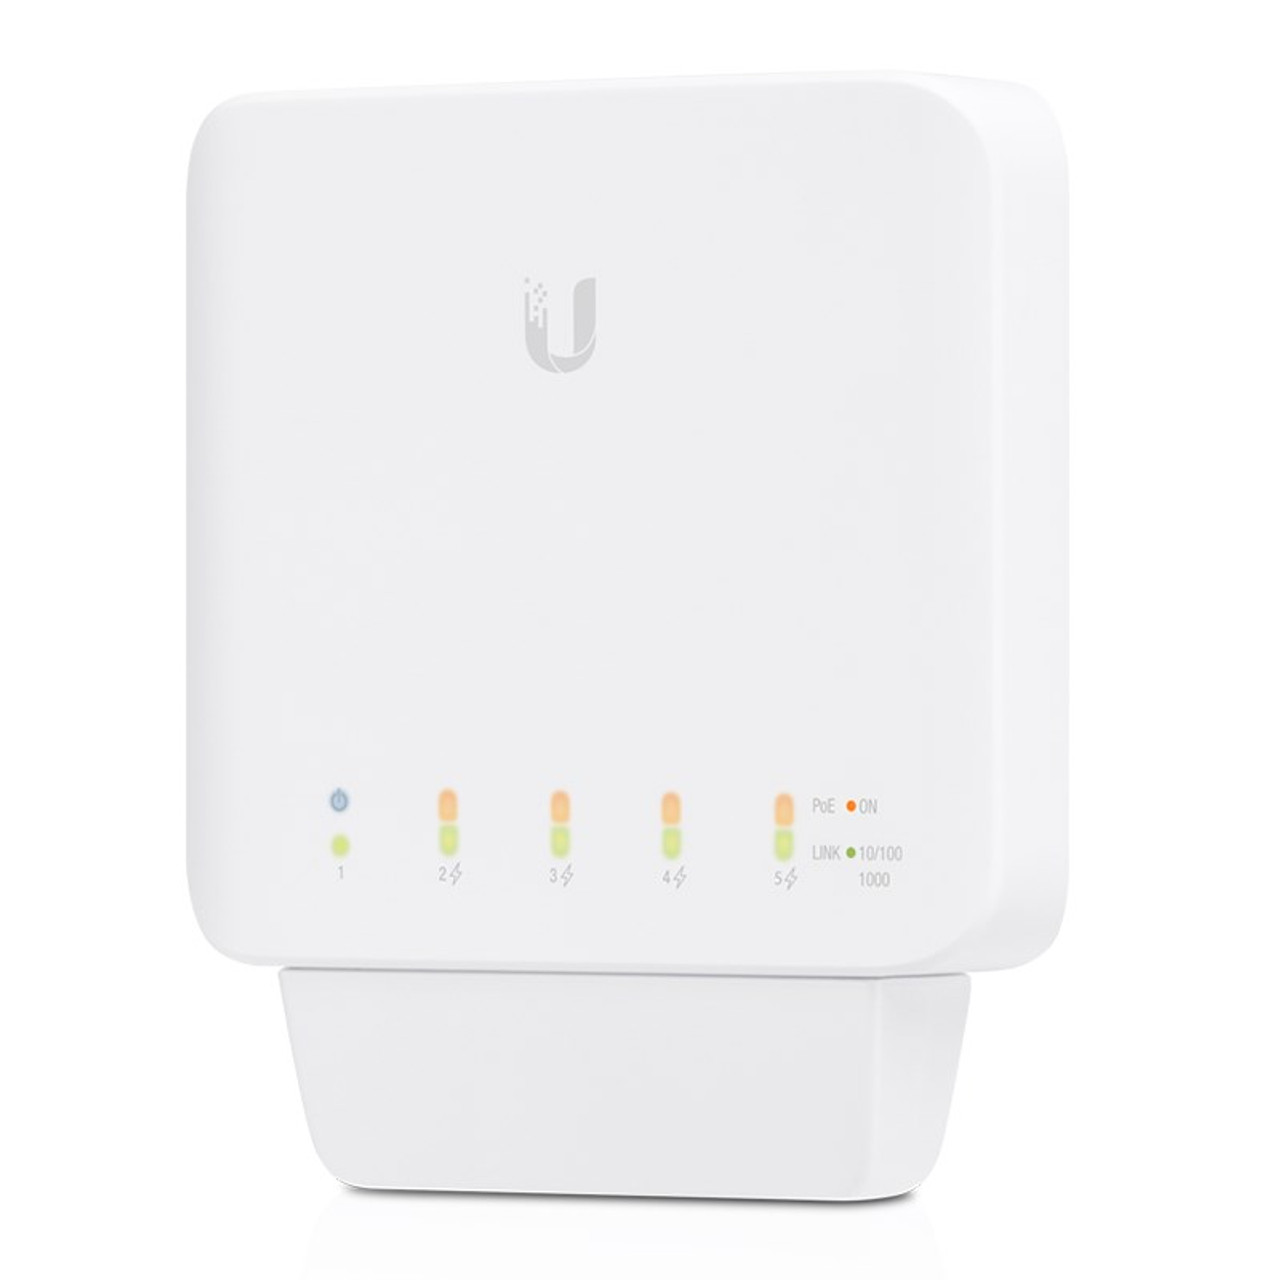 Image for Ubiquiti Networks USW-Flex 5-Port Layer 2 Gigabit Switch with PoE Support CX Computer Superstore